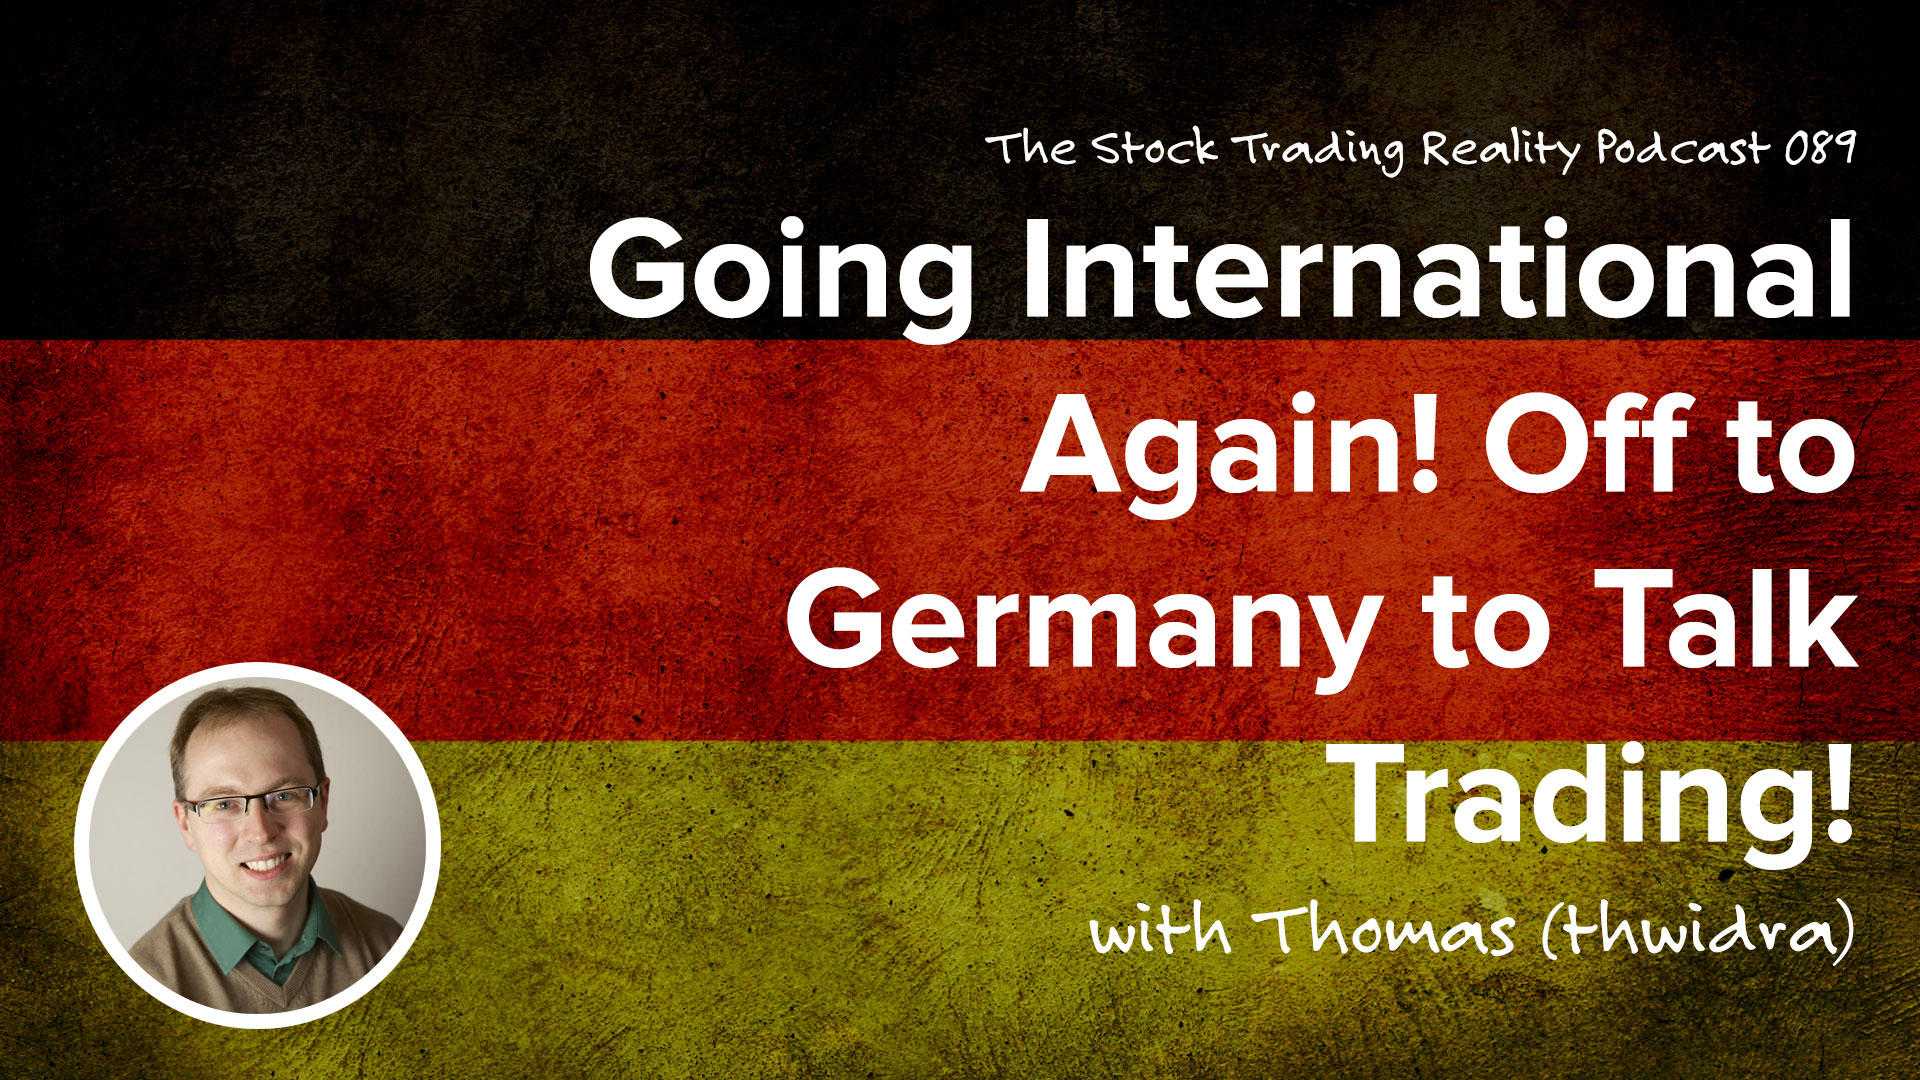 STR 089: Going International Again! Off to Germany to Talk Trading!